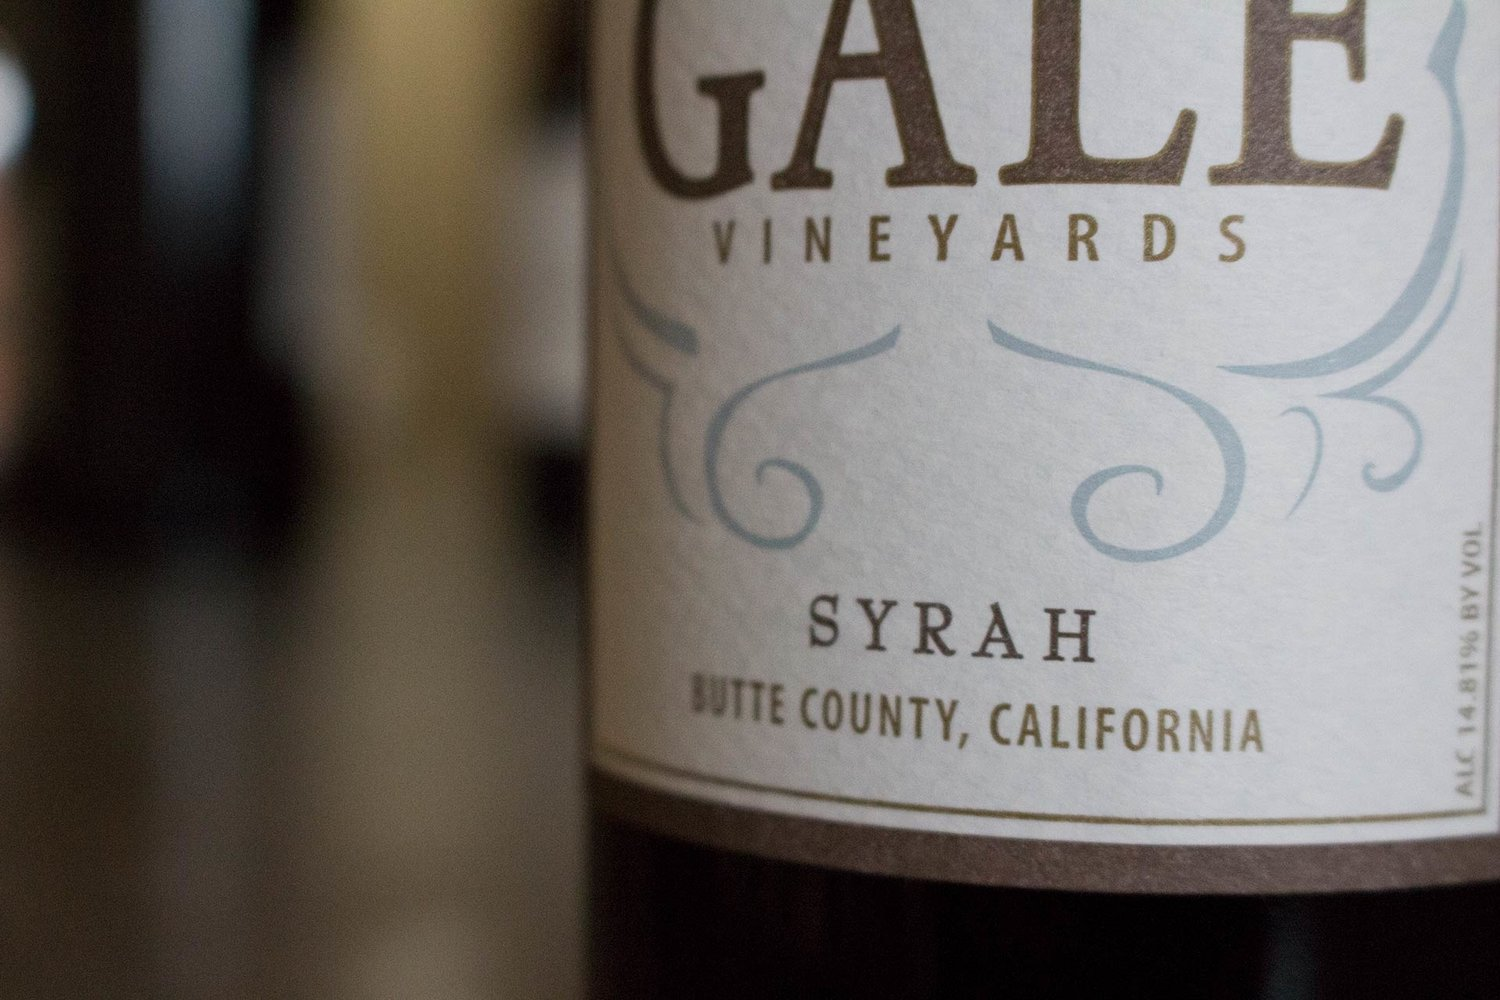 Gale-Vineyards-Syrah-Wine.jpg